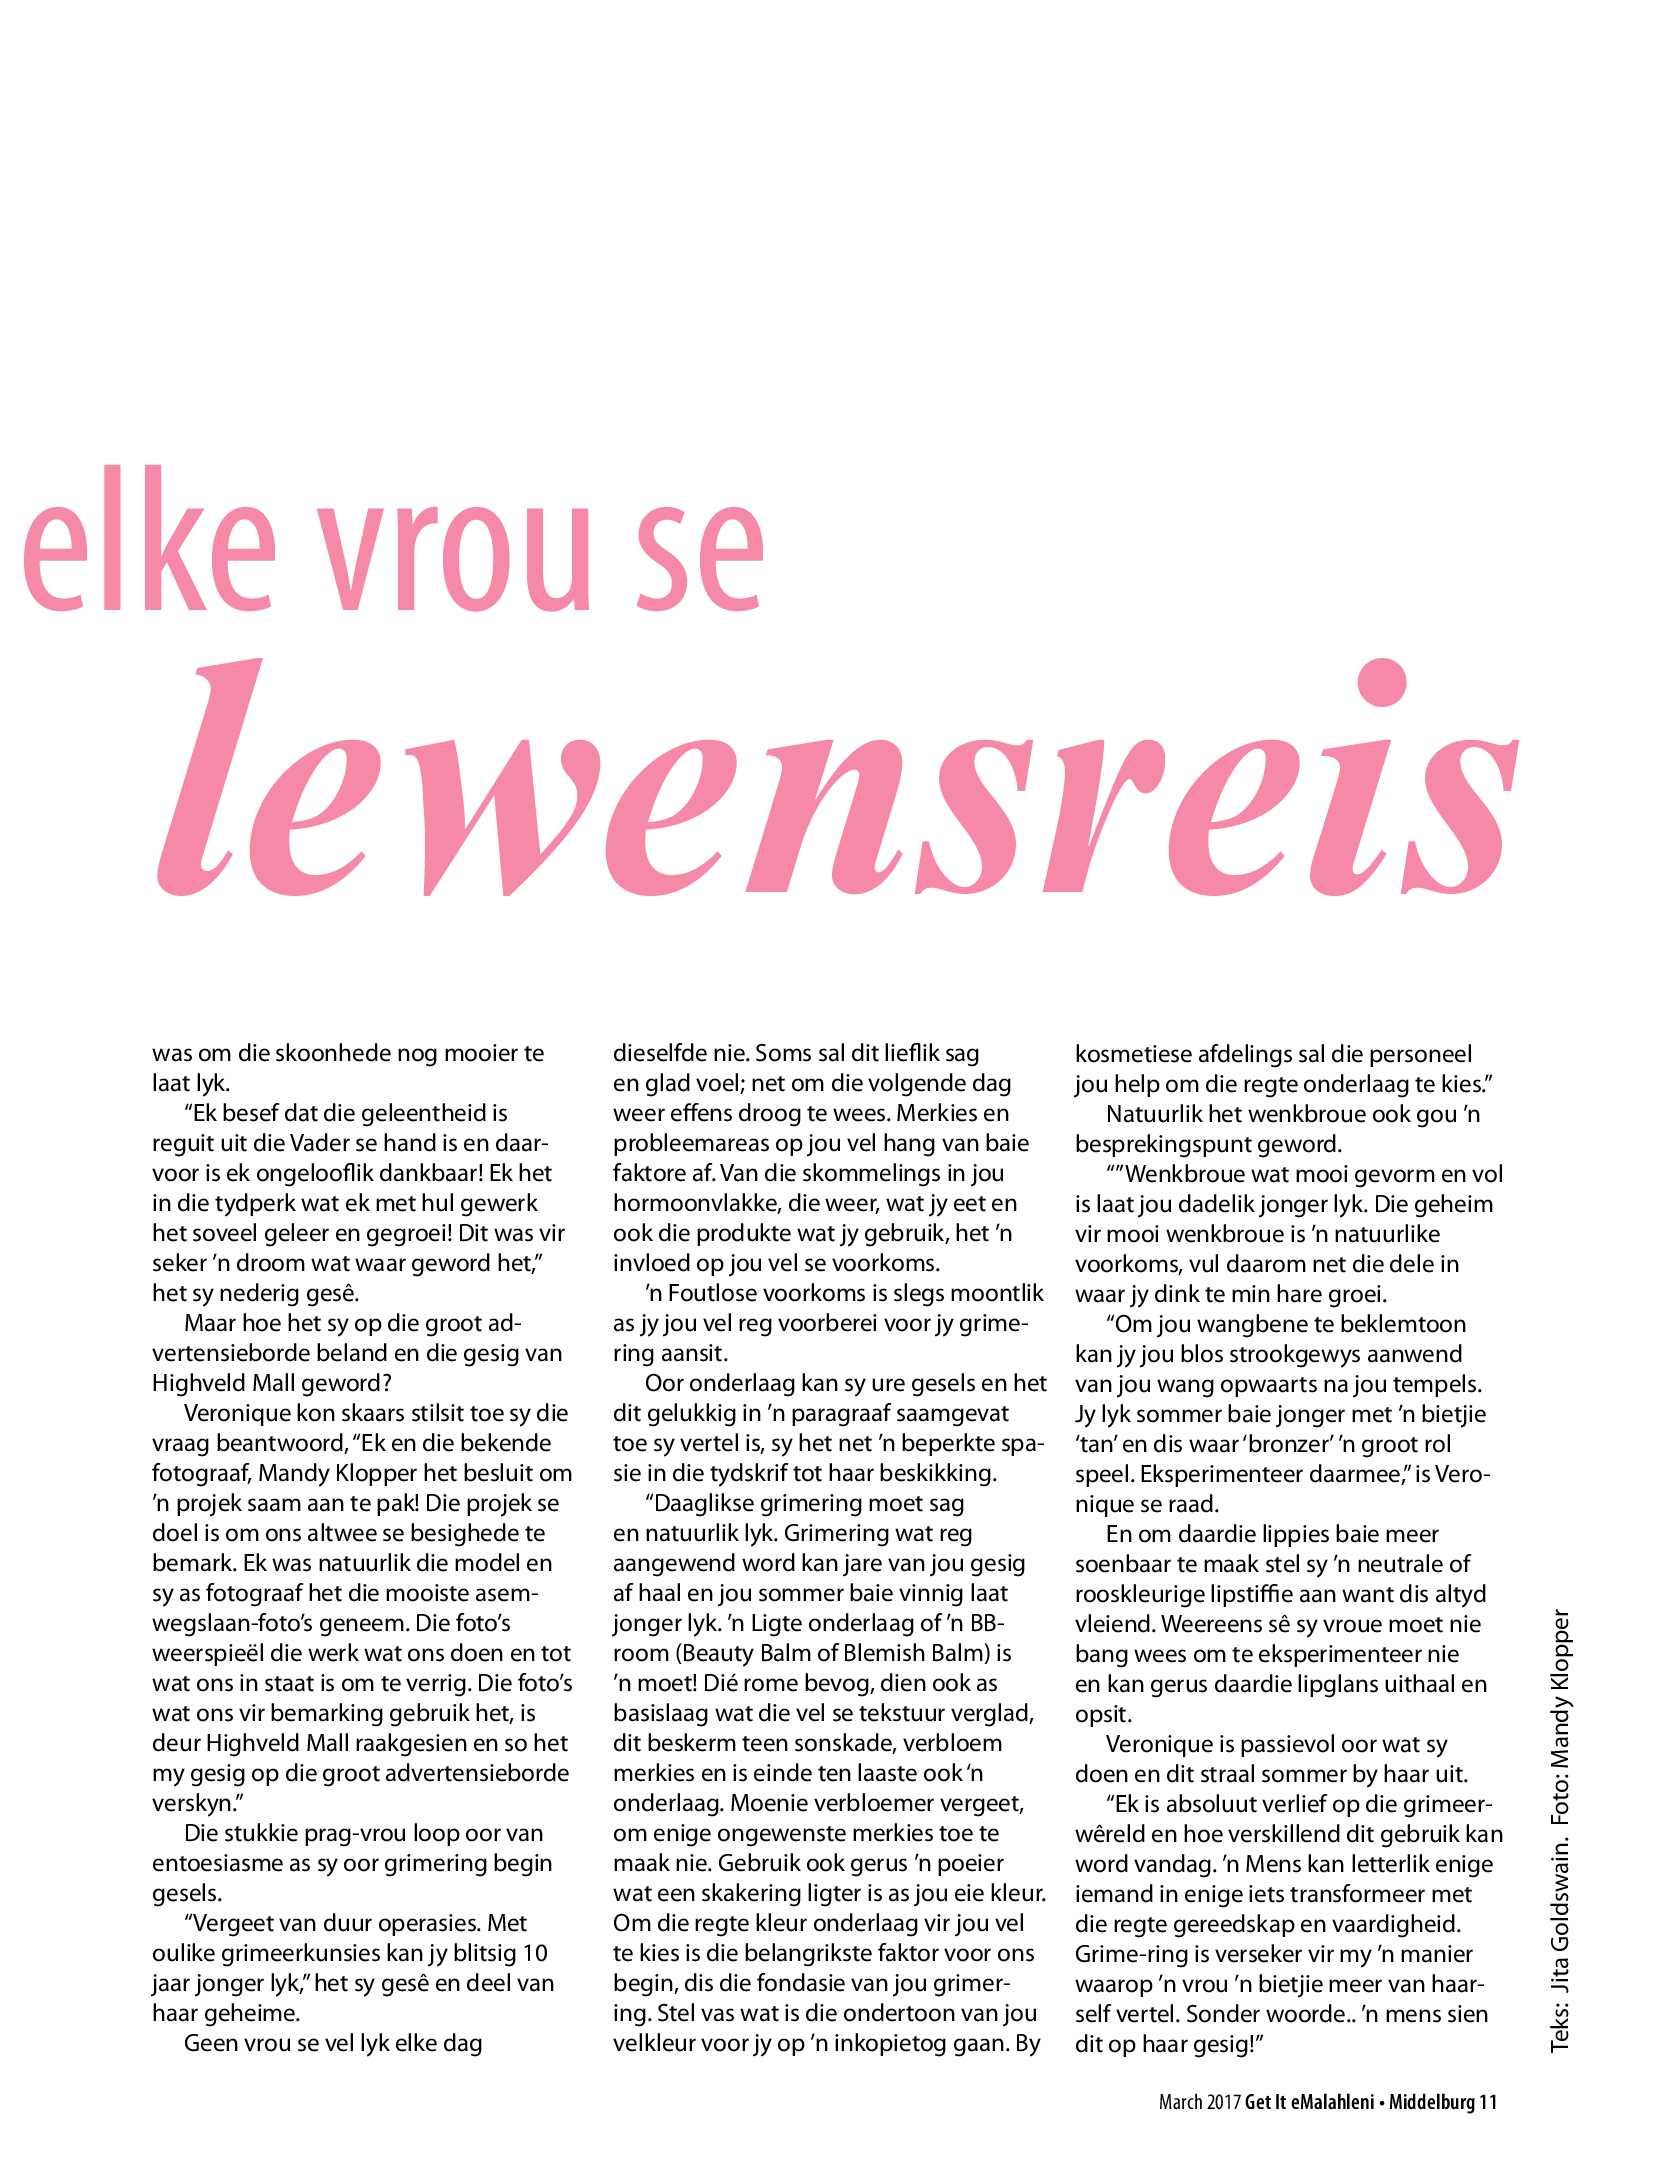 get-middelburg-march-2017-epapers-page-13